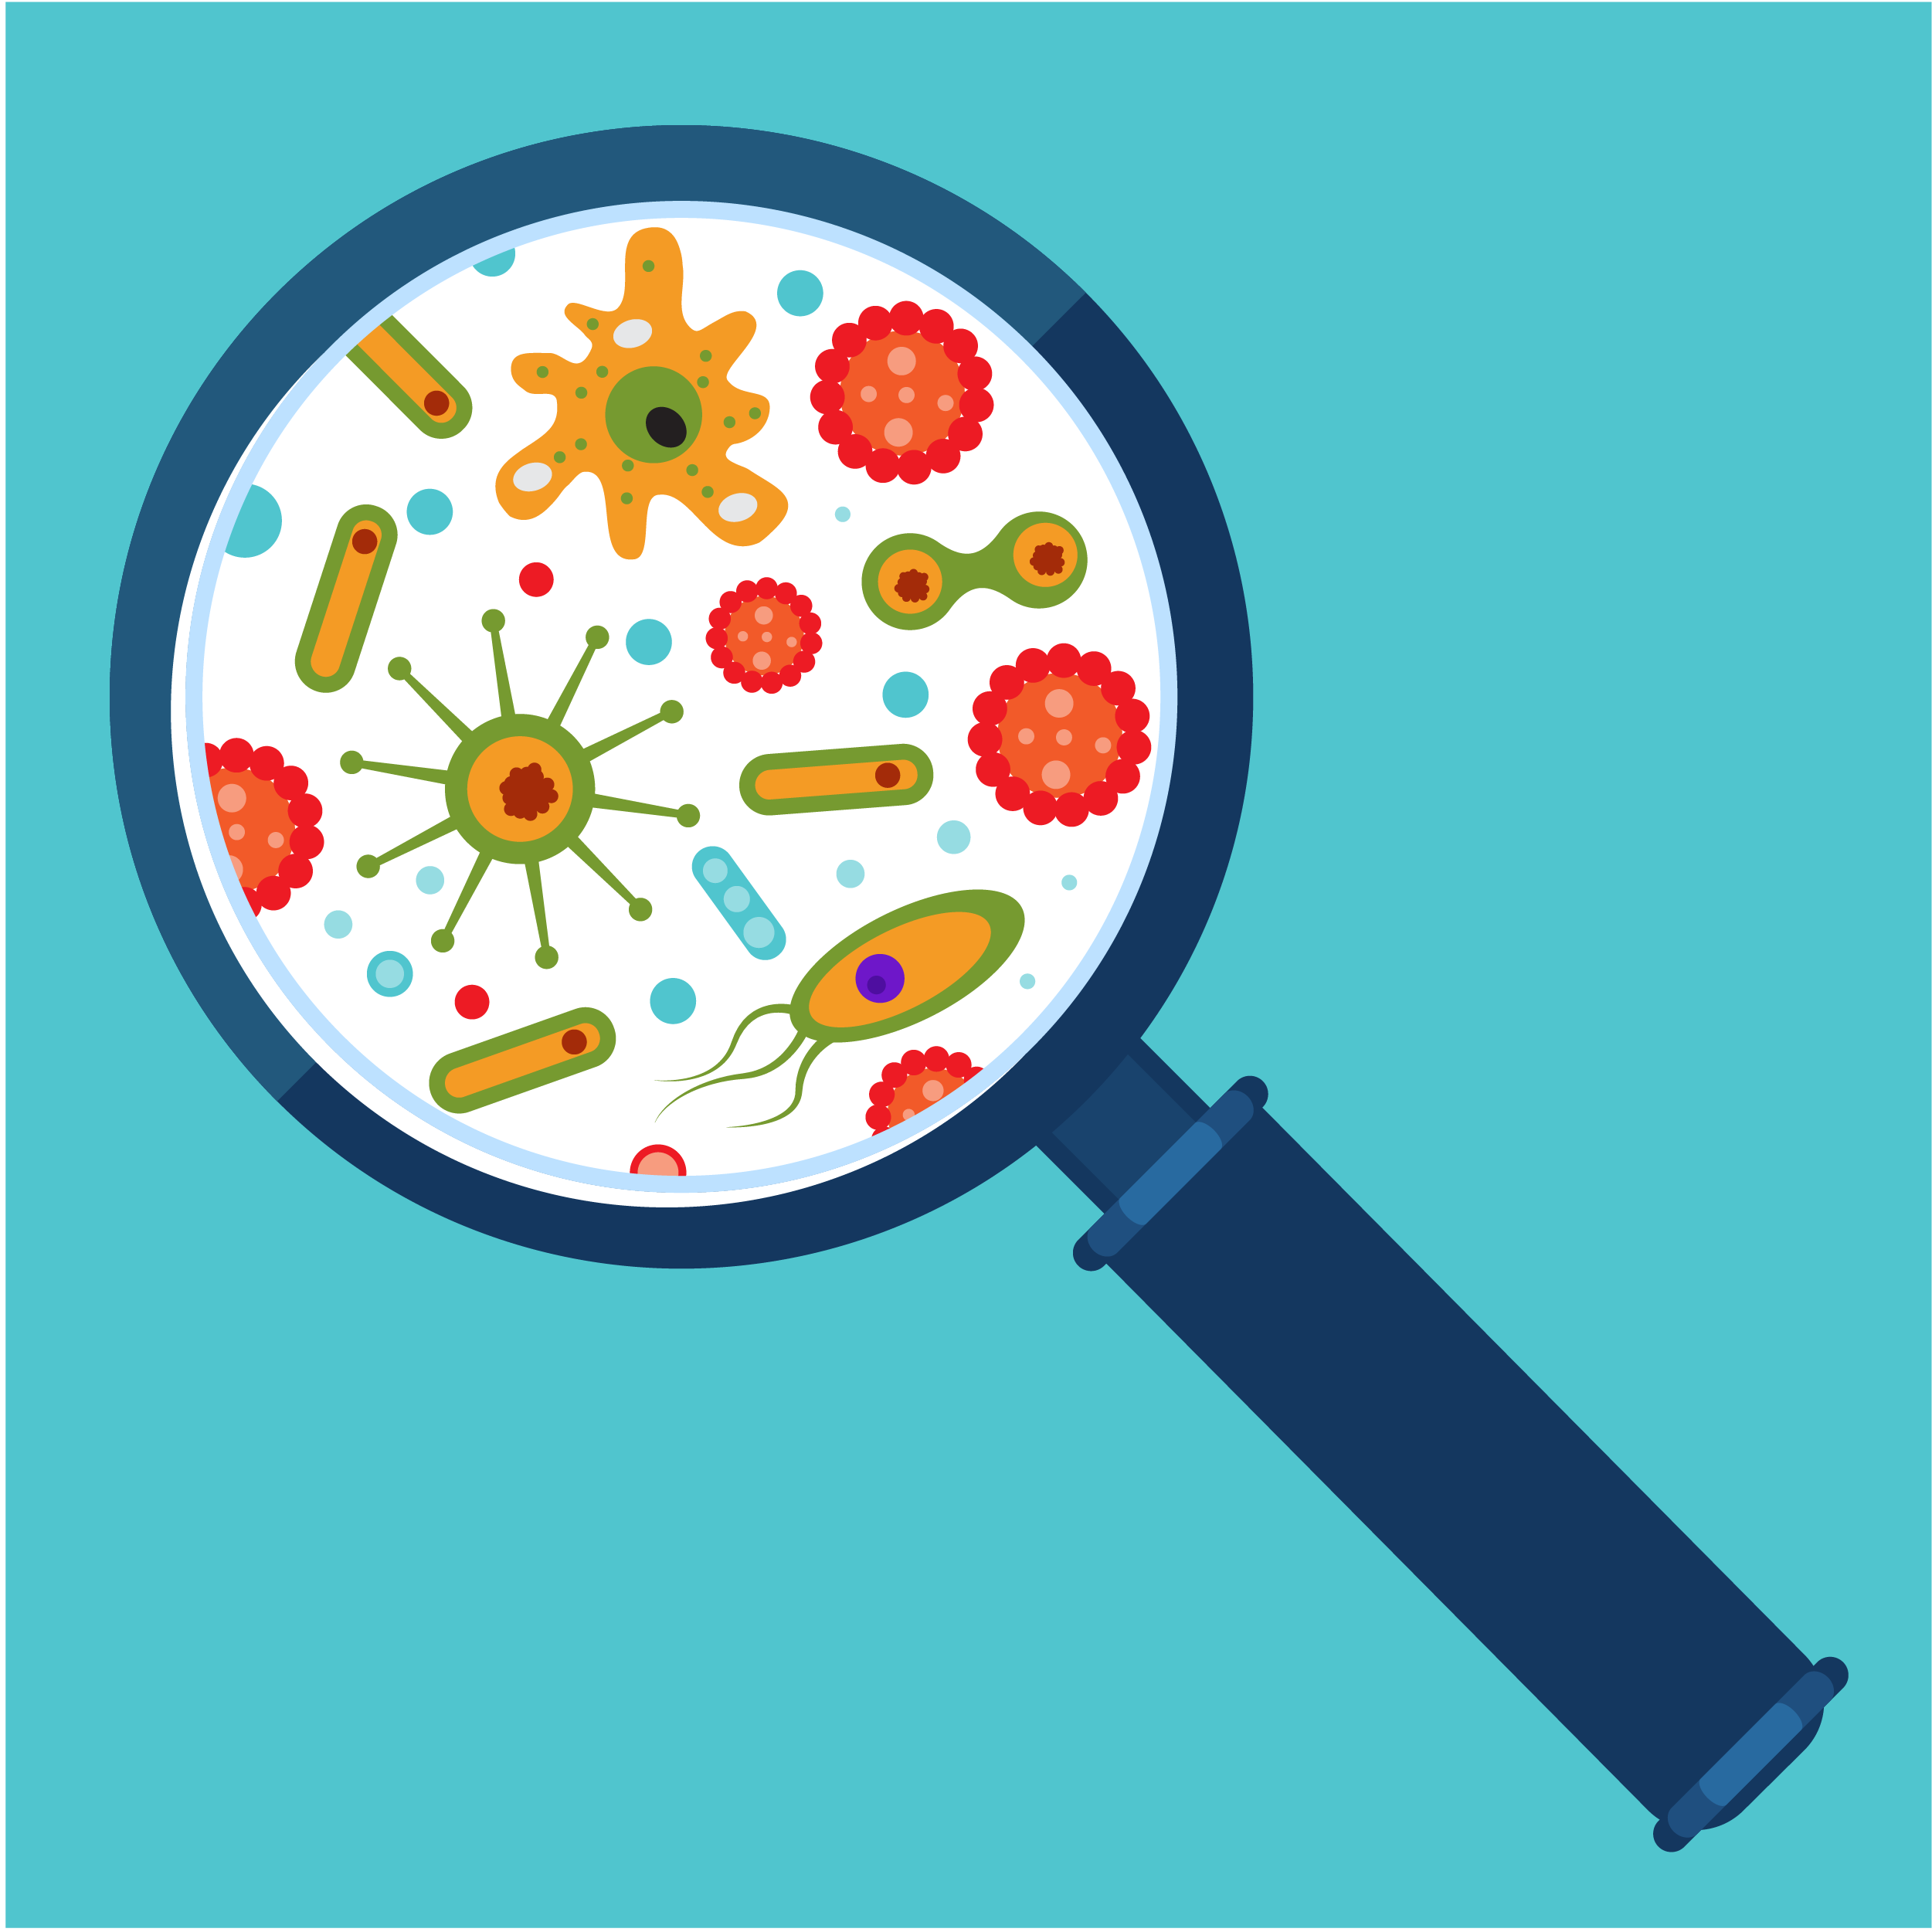 Illustration of microbes under a magnifying glass